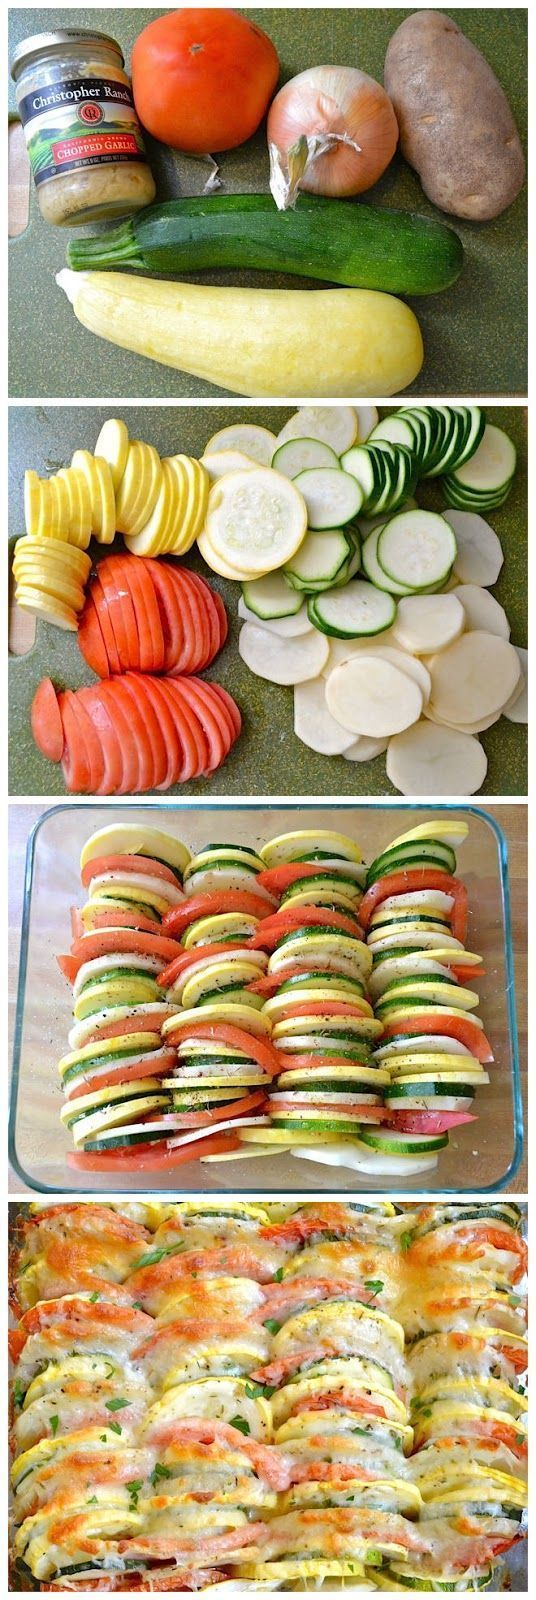 potatoes, onions, squash, zuchinni, tomatos...sliced, topped with seasoning and parmesian cheese.